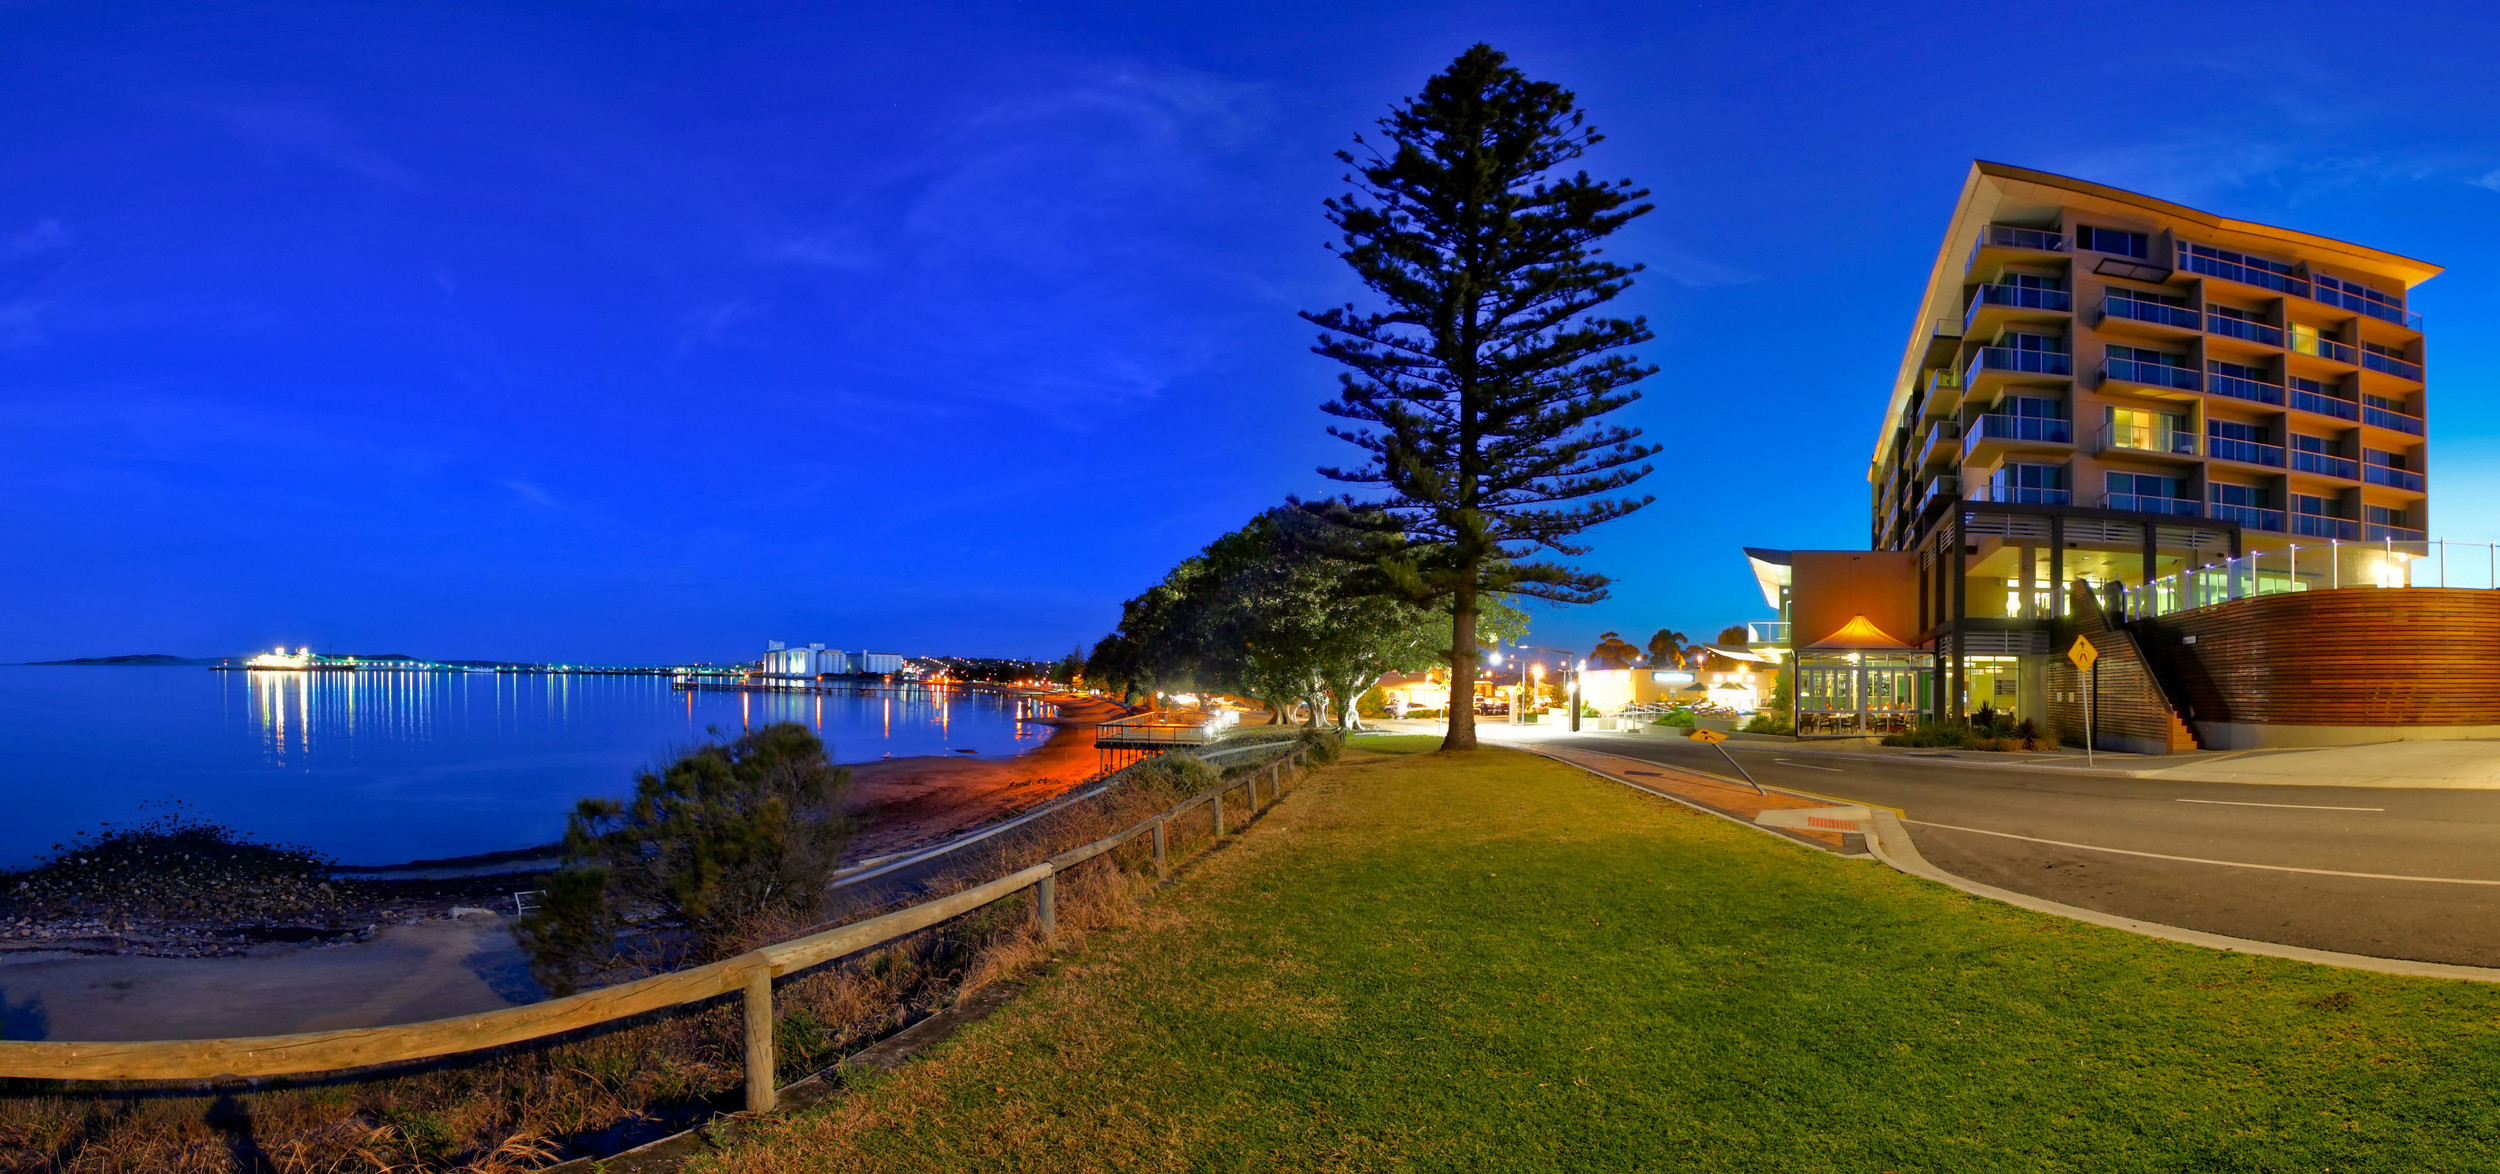 Dusk at the Port Lincoln Hotel - Photograph supplied by Port Lincoln Hotel.jpg